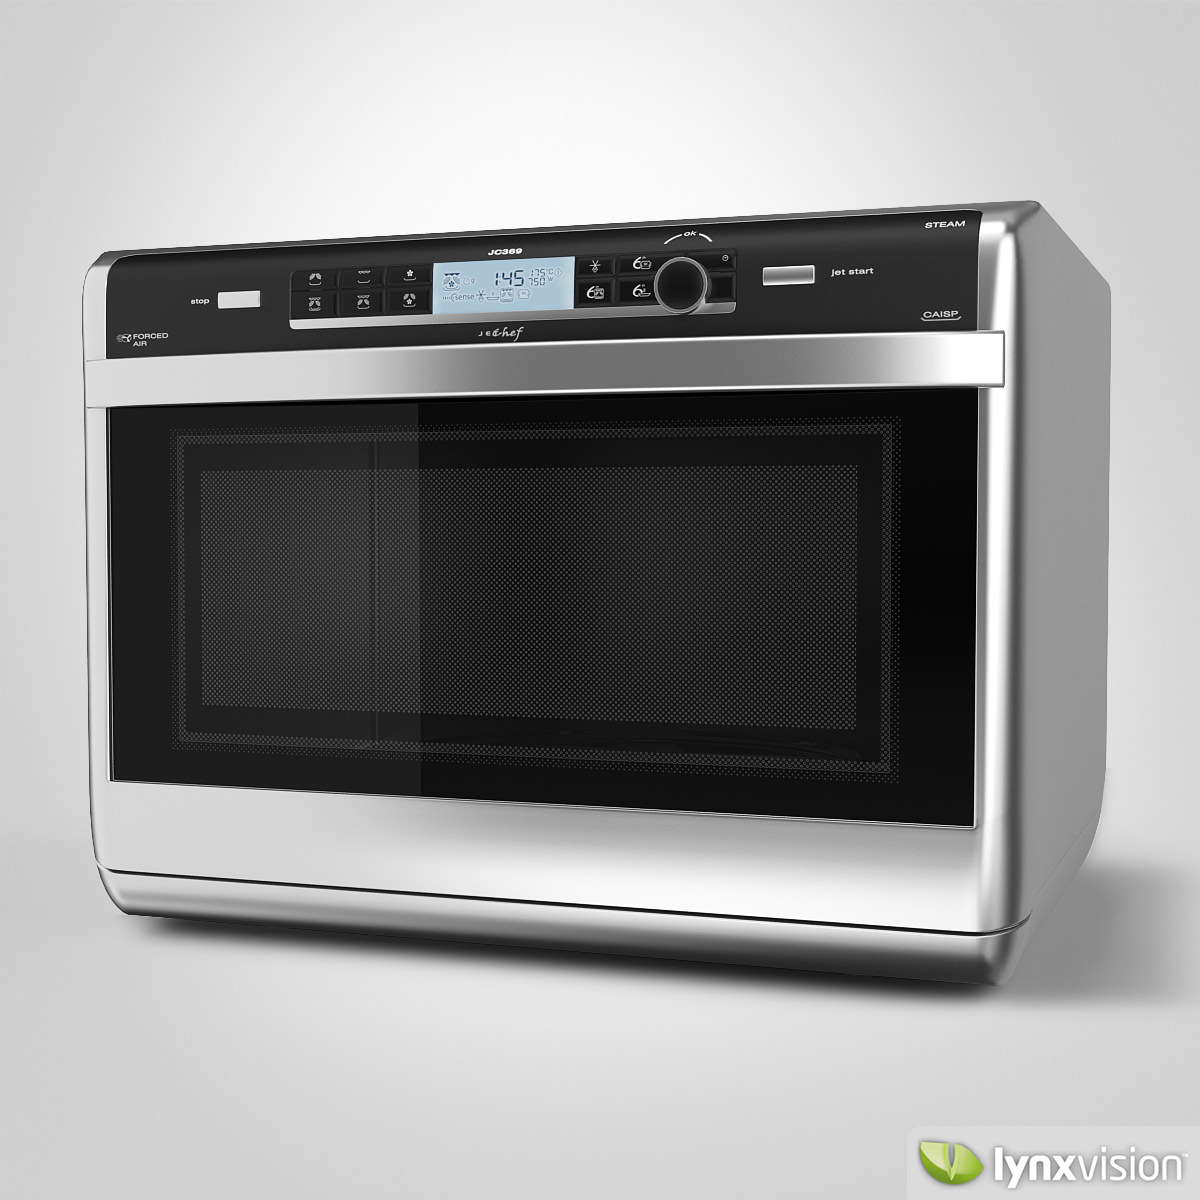 whirlpool oven whirlpool jet chef microwave oven. Black Bedroom Furniture Sets. Home Design Ideas